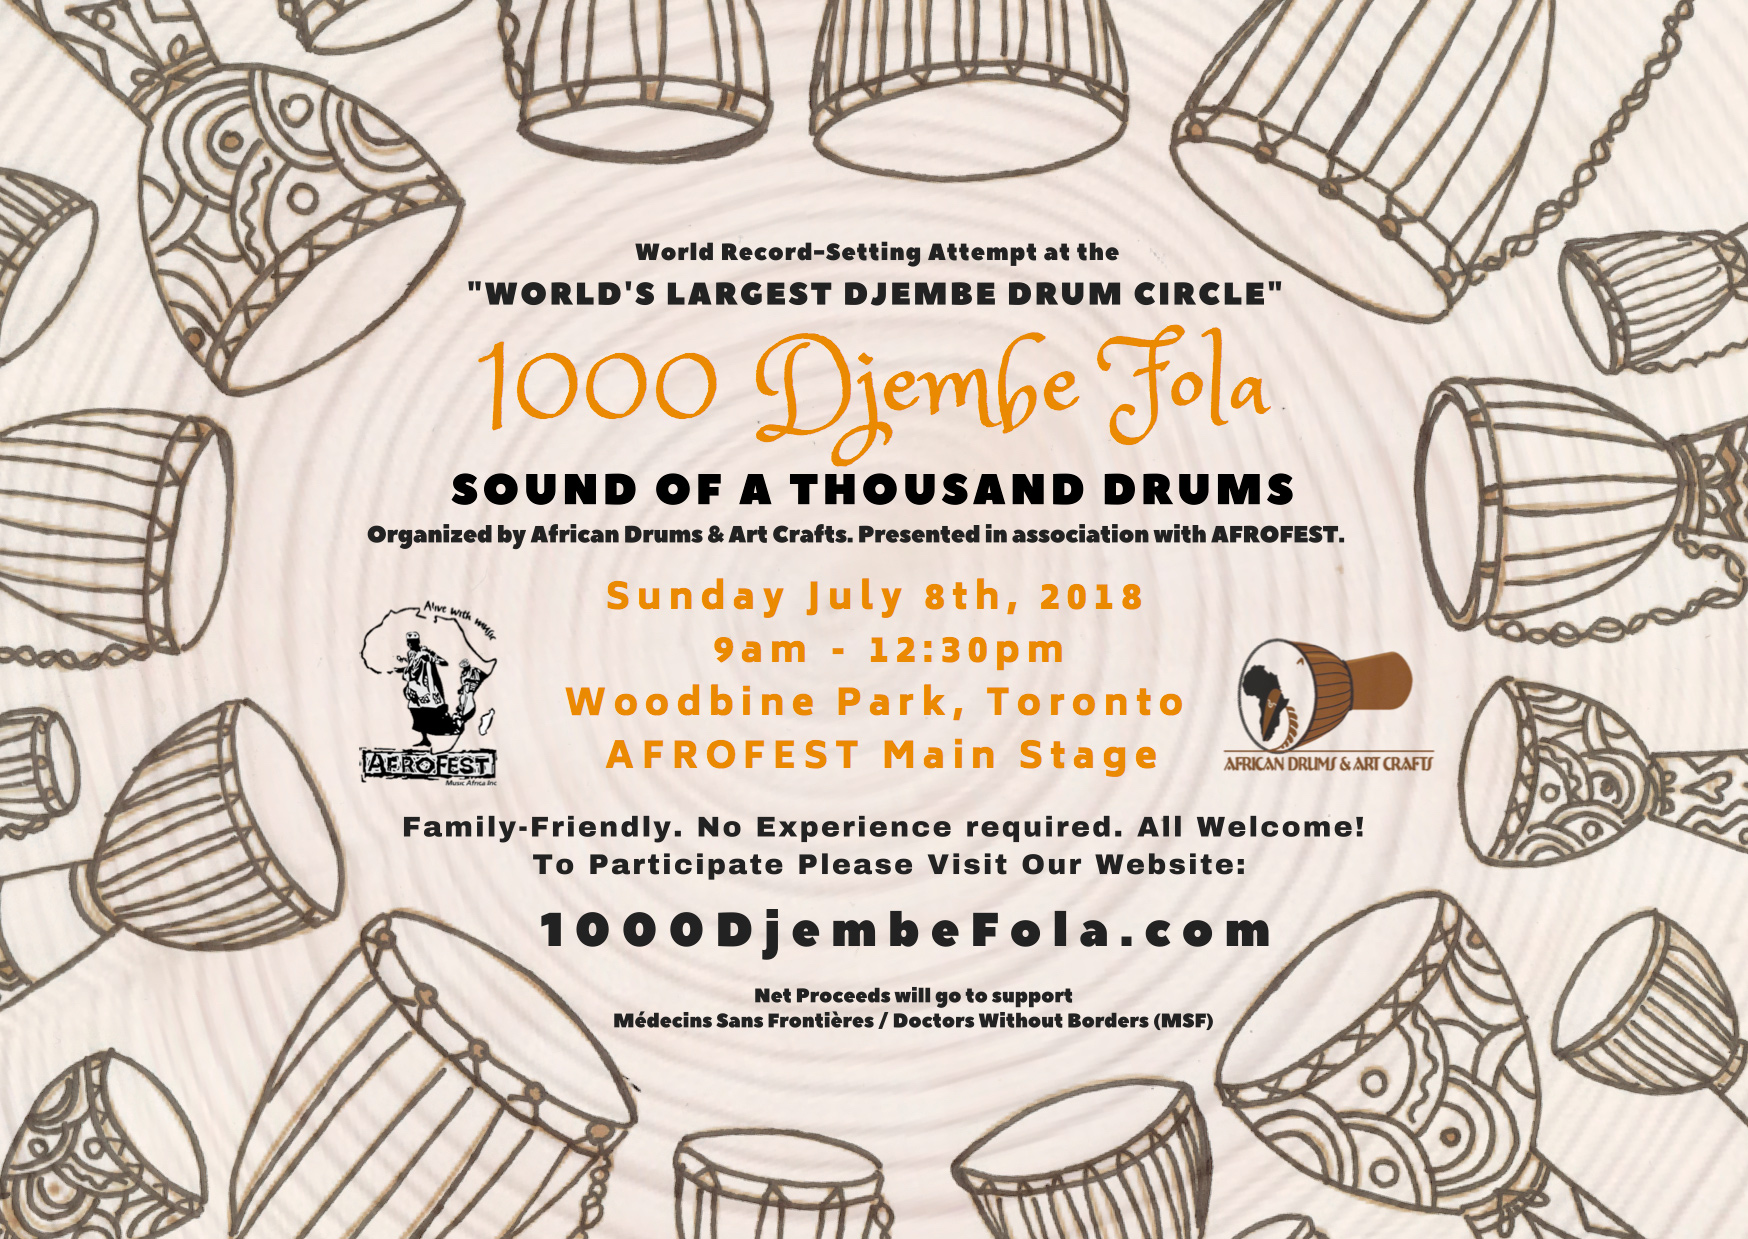 1000 Djembe Fola Poster African Drums & Art Crafts AFROFEST 2018 Largest Drum Circle World Record Attempt